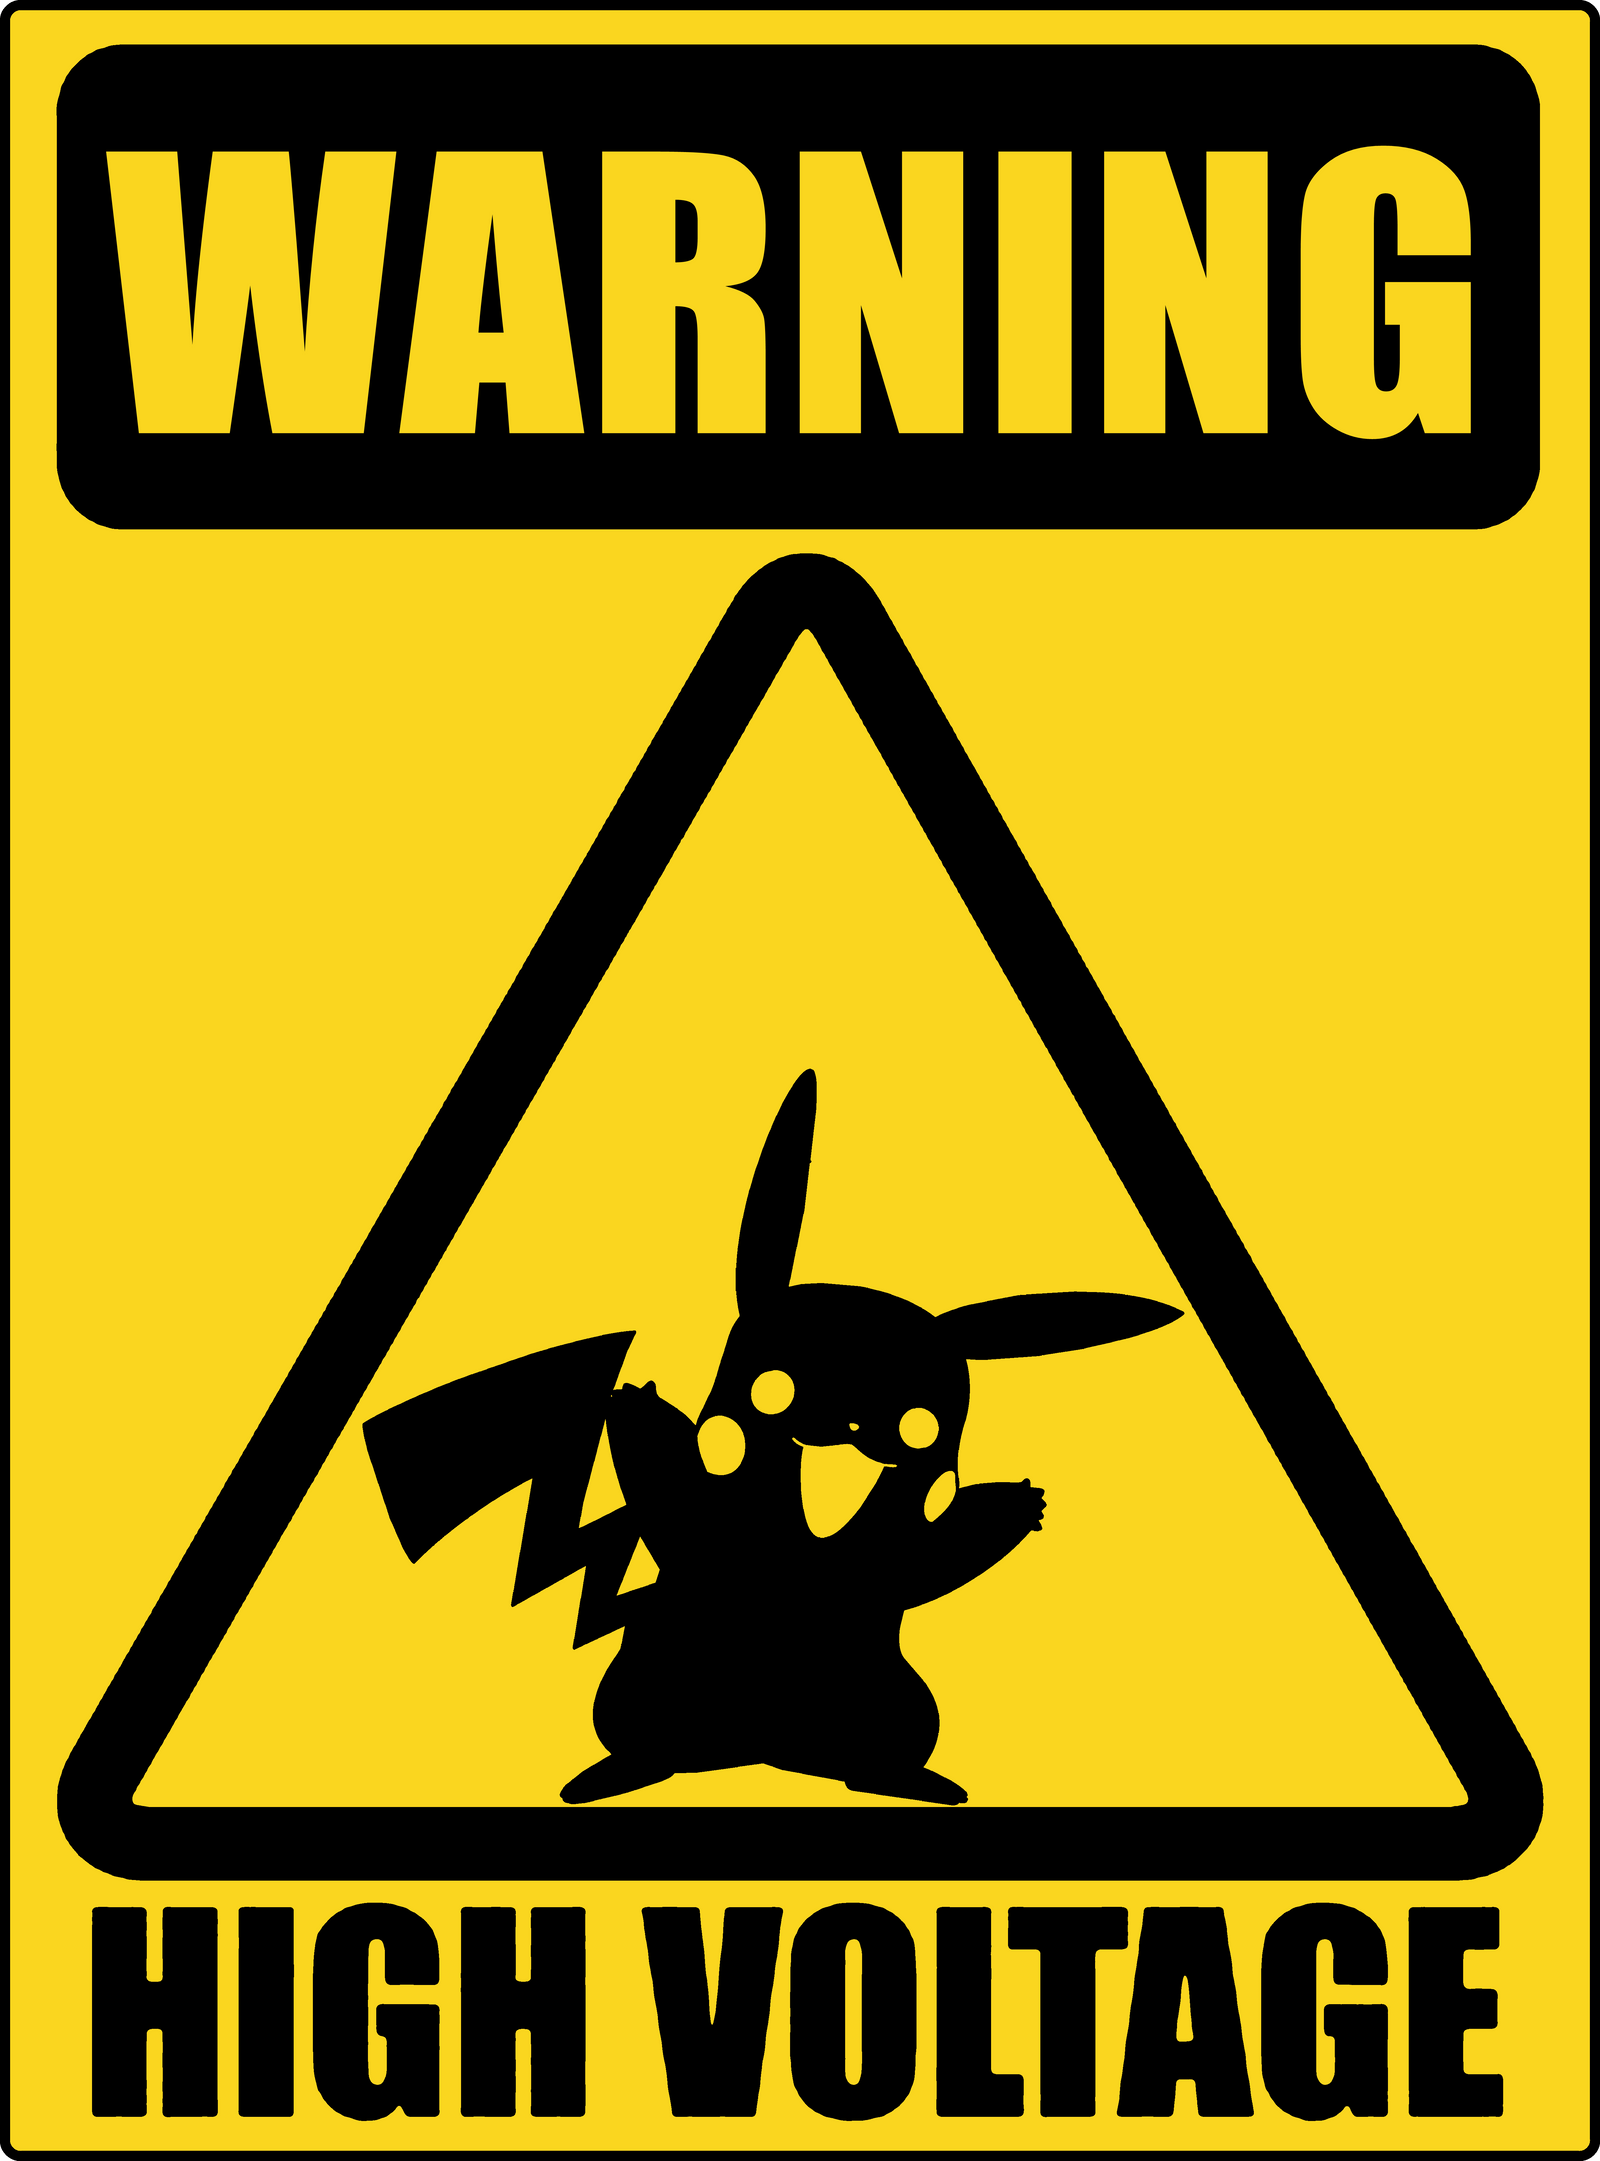 High Voltage Pikachu By Grumbeerkopp On Deviantart. Pleural Signs. Negative Energy Signs. Protruded Signs Of Stroke. Dessert Bar Signs. Temple Signs Of Stroke. Vintage Movie Theater Signs. Clapboard Signs Of Stroke. Abnormal Signs Of Stroke